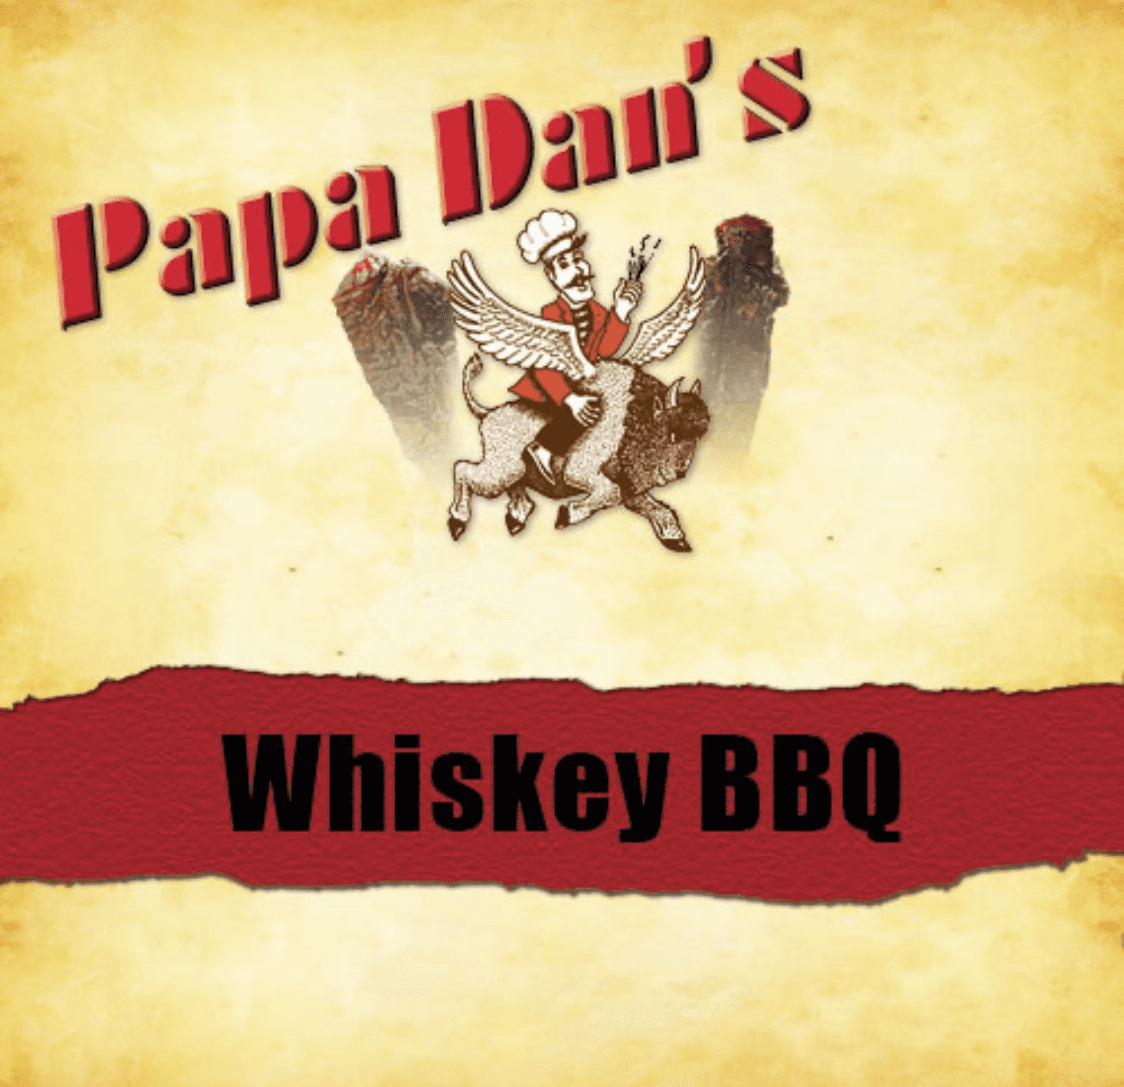 Whiskey BBQ Papa Dan's Beef Jerky 1/2 Pound Bag